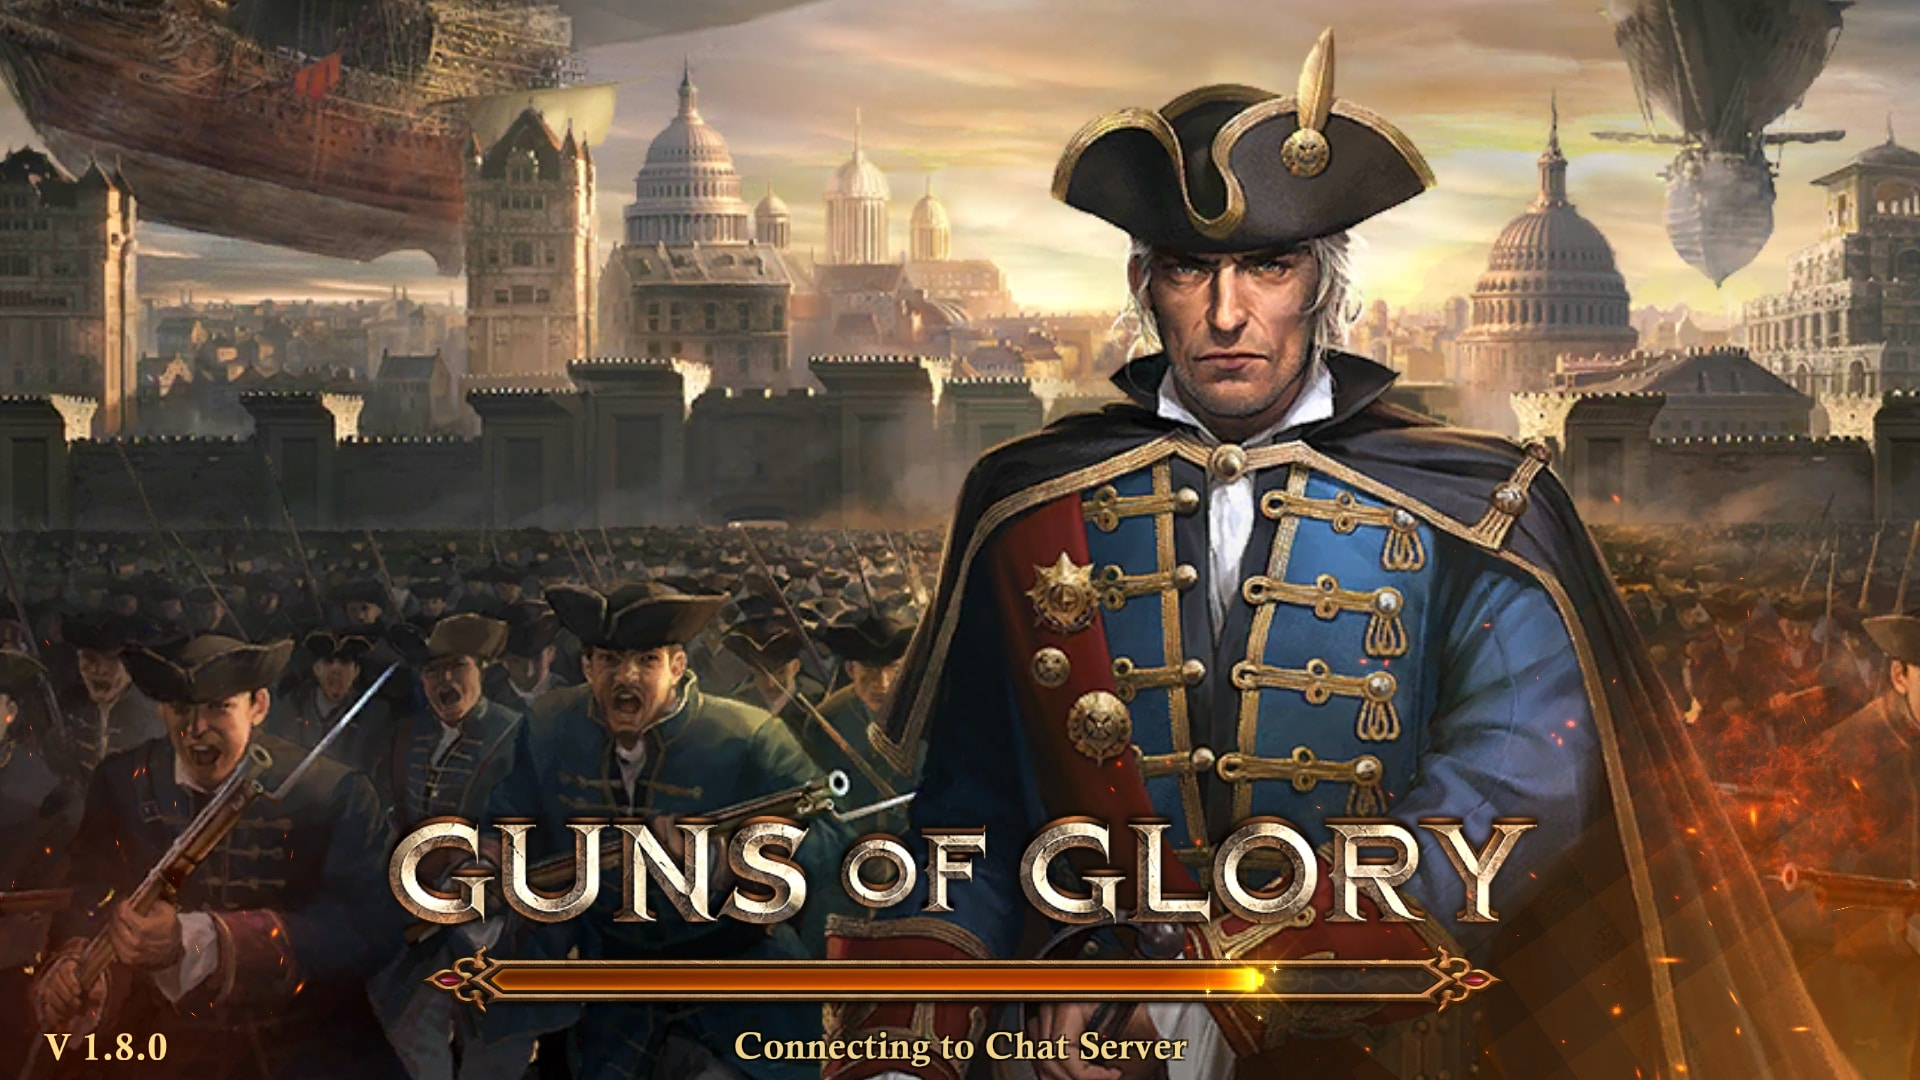 Download Guns of Glory APK- For Android and iOS 12